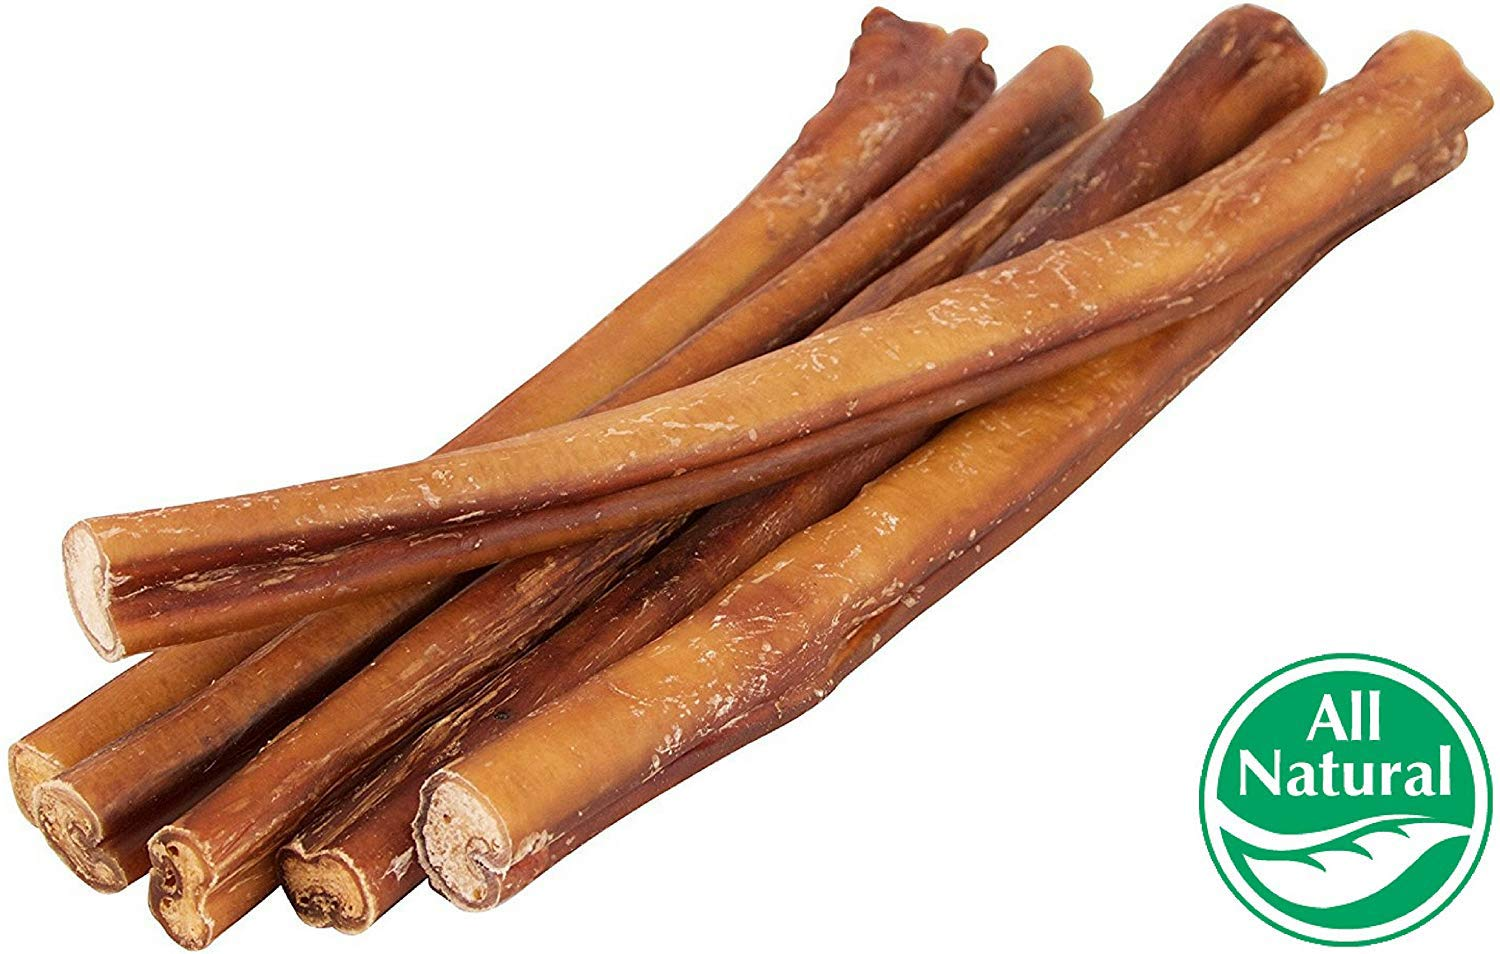 12'' Straight Bully Sticks for Dogs [Large Thickness] (25 Pack) - All Natural & Odorless Bully Bones | Long Lasting Chew Dental Treats | Best Thick Bullie Sticks for K9 or Puppies | Grass-Fed Beef by Pawstruck